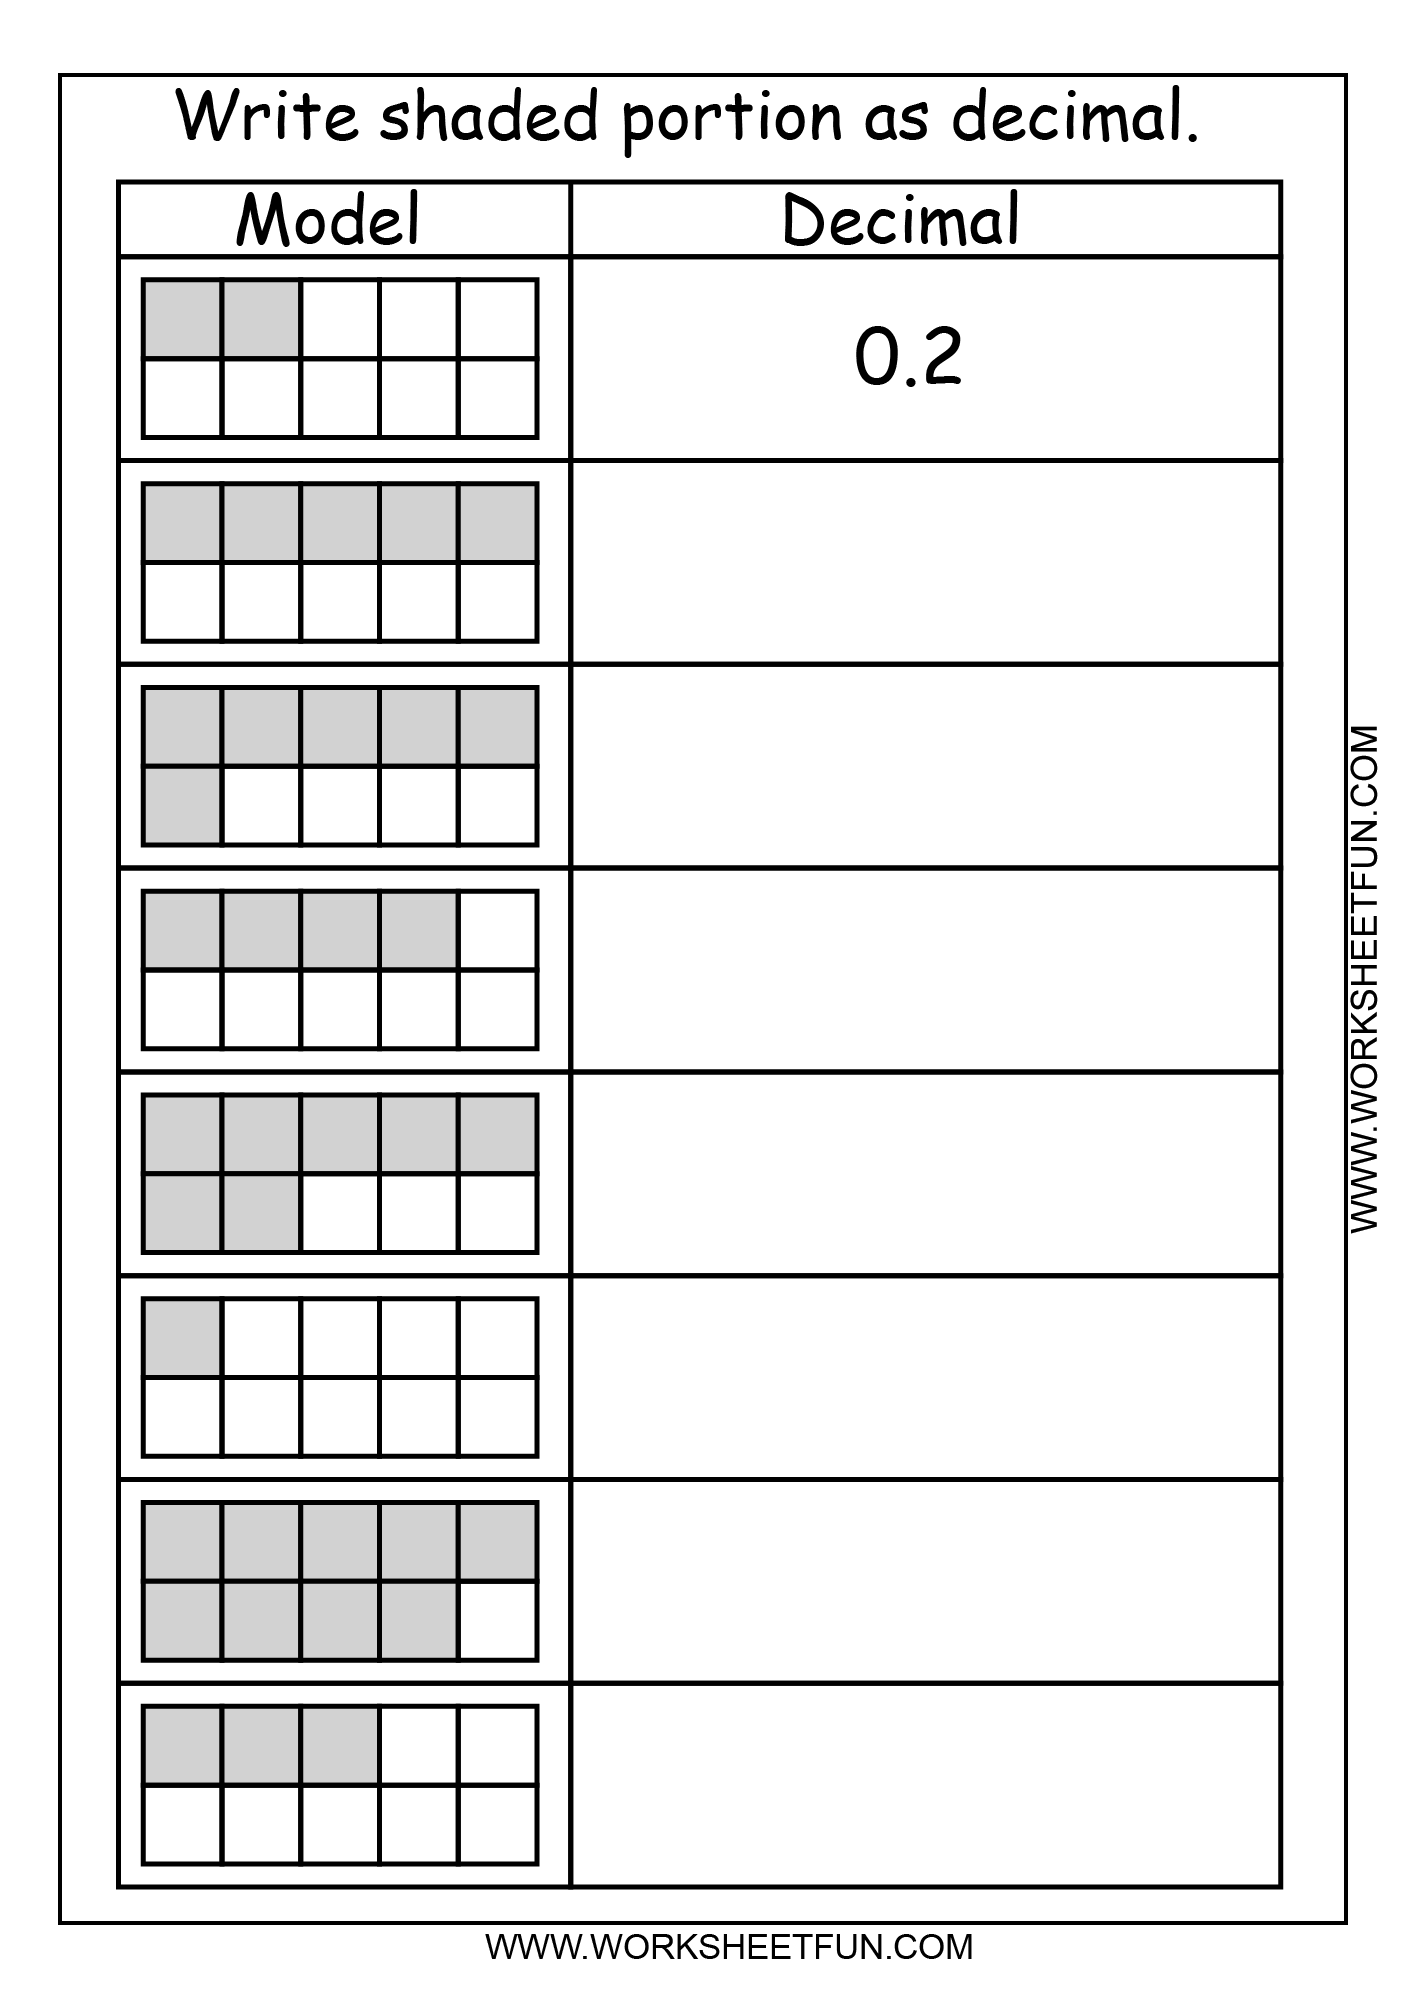 Free Decimal Worksheets Very Nice